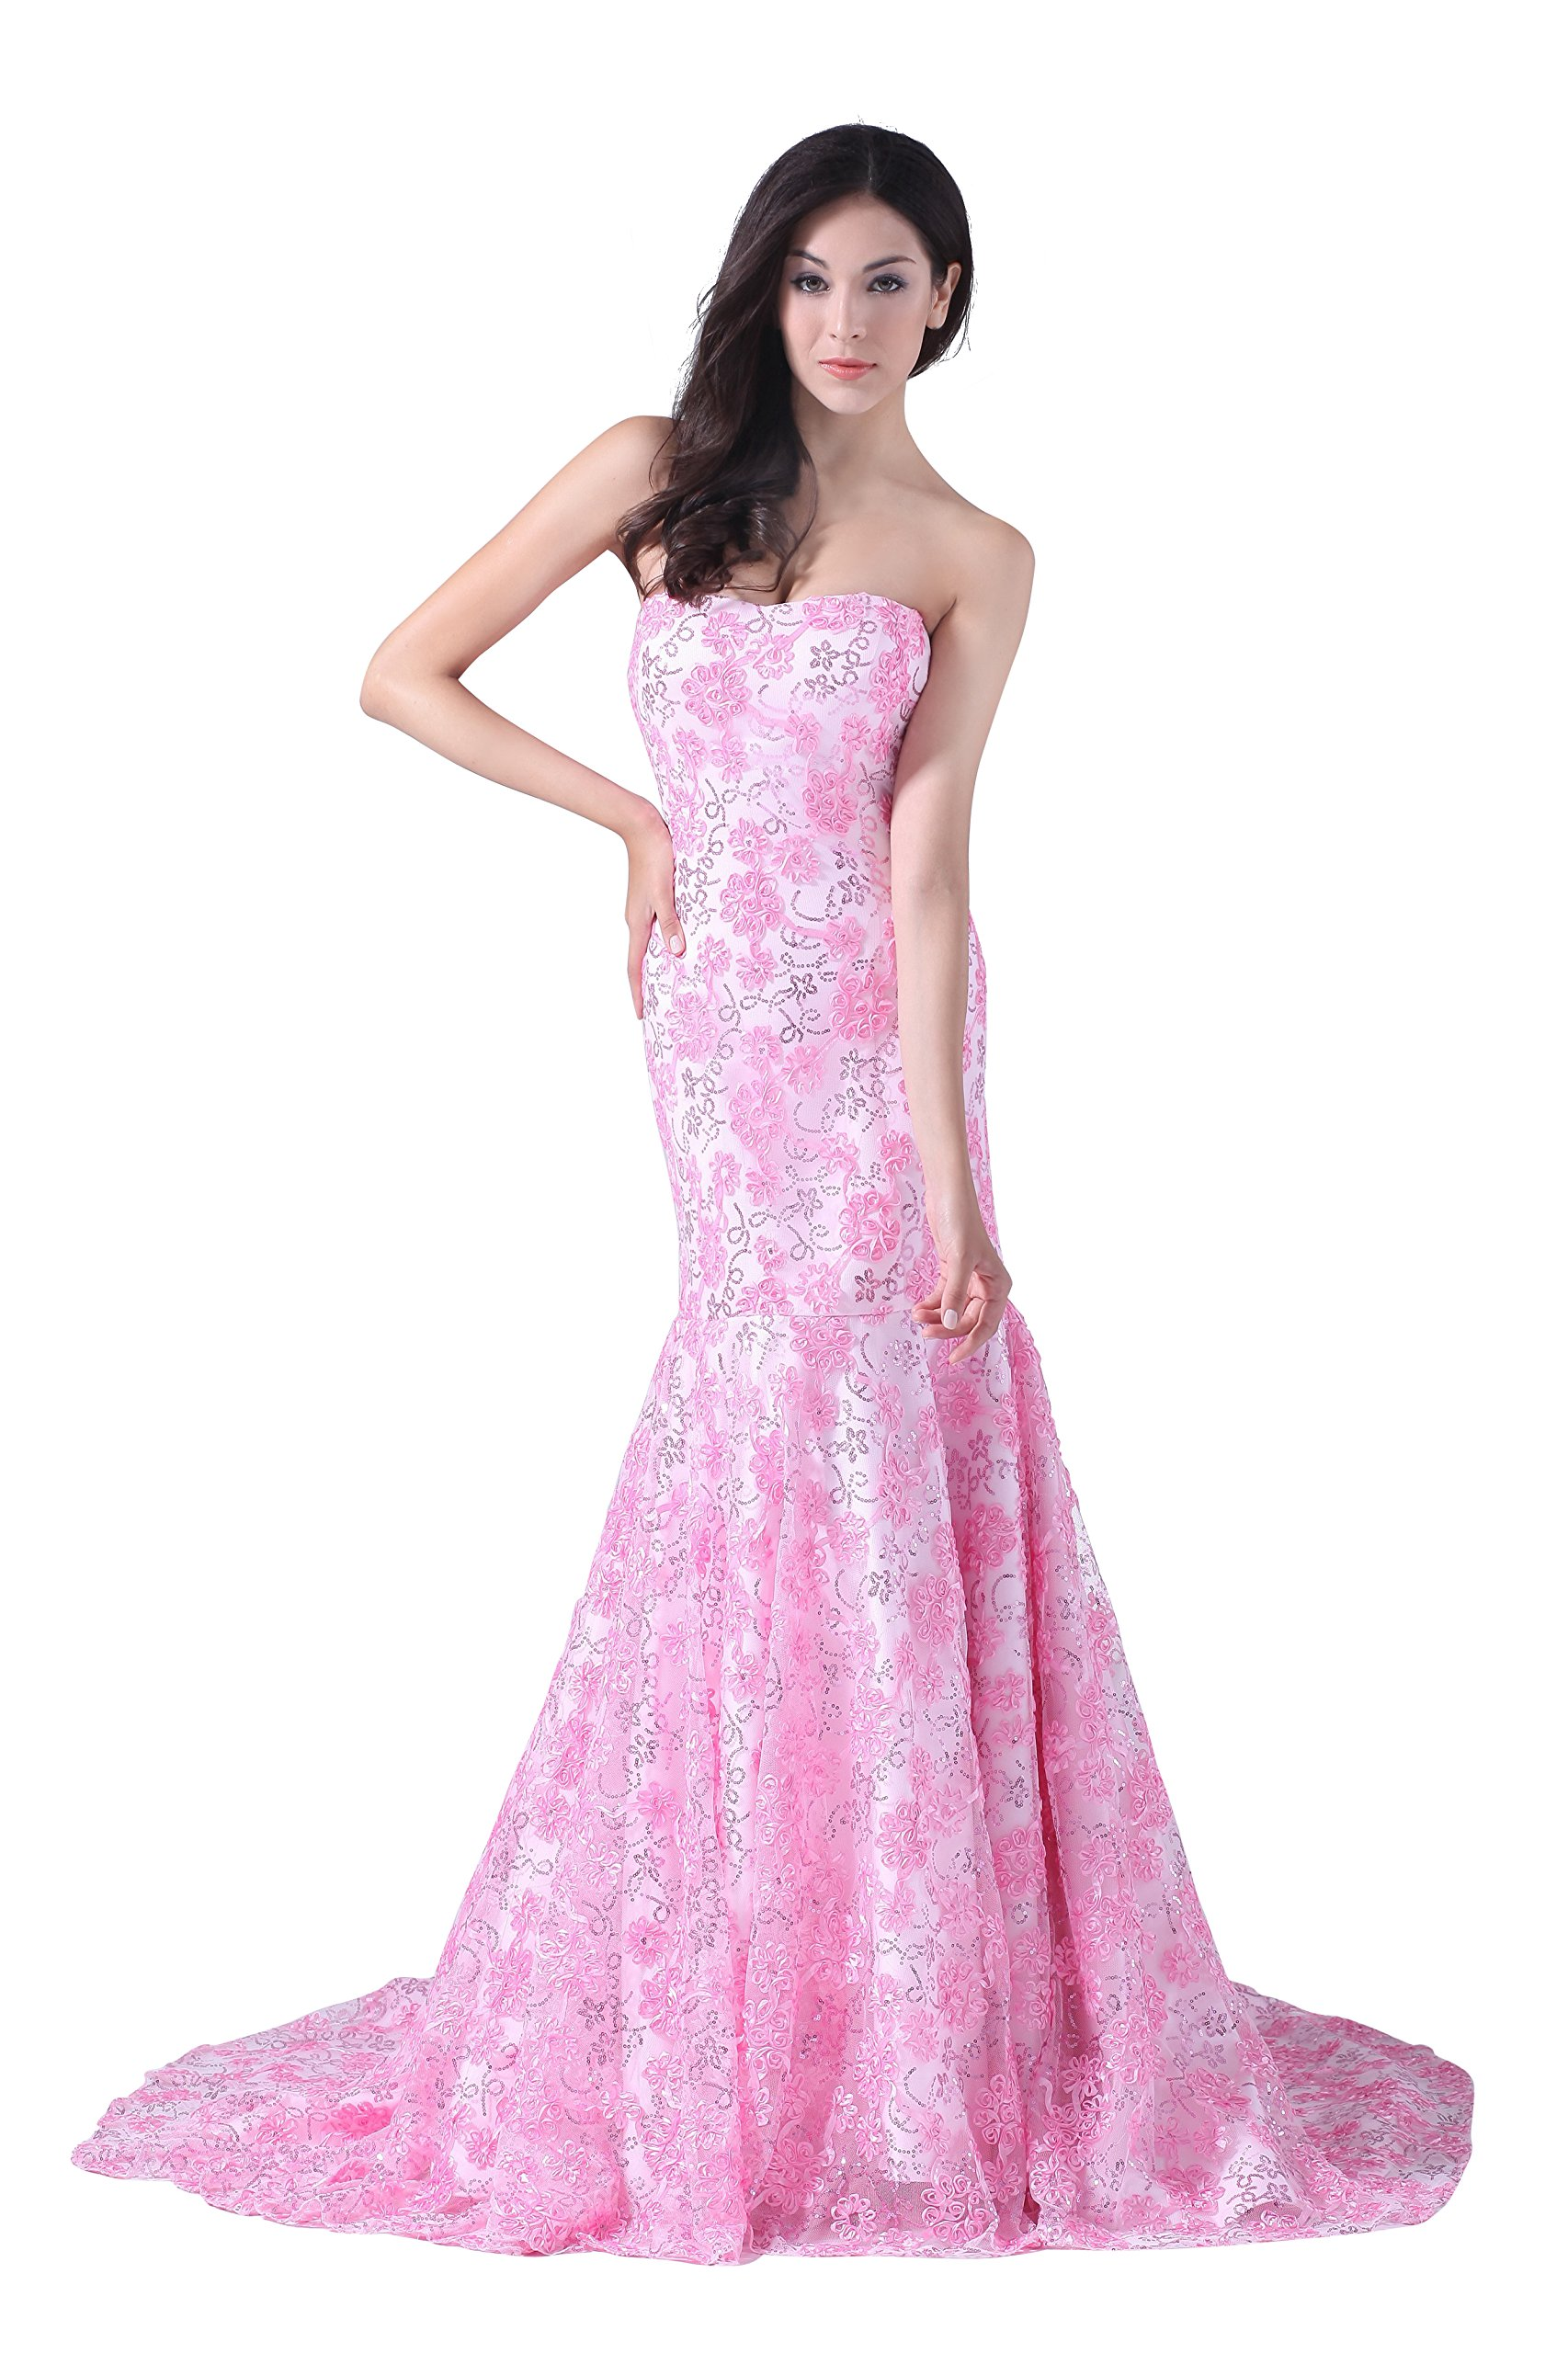 Vogue007 Womens Strapless Pongee Satin Formal Dress with Sequin, Pink, 18W by Unknown